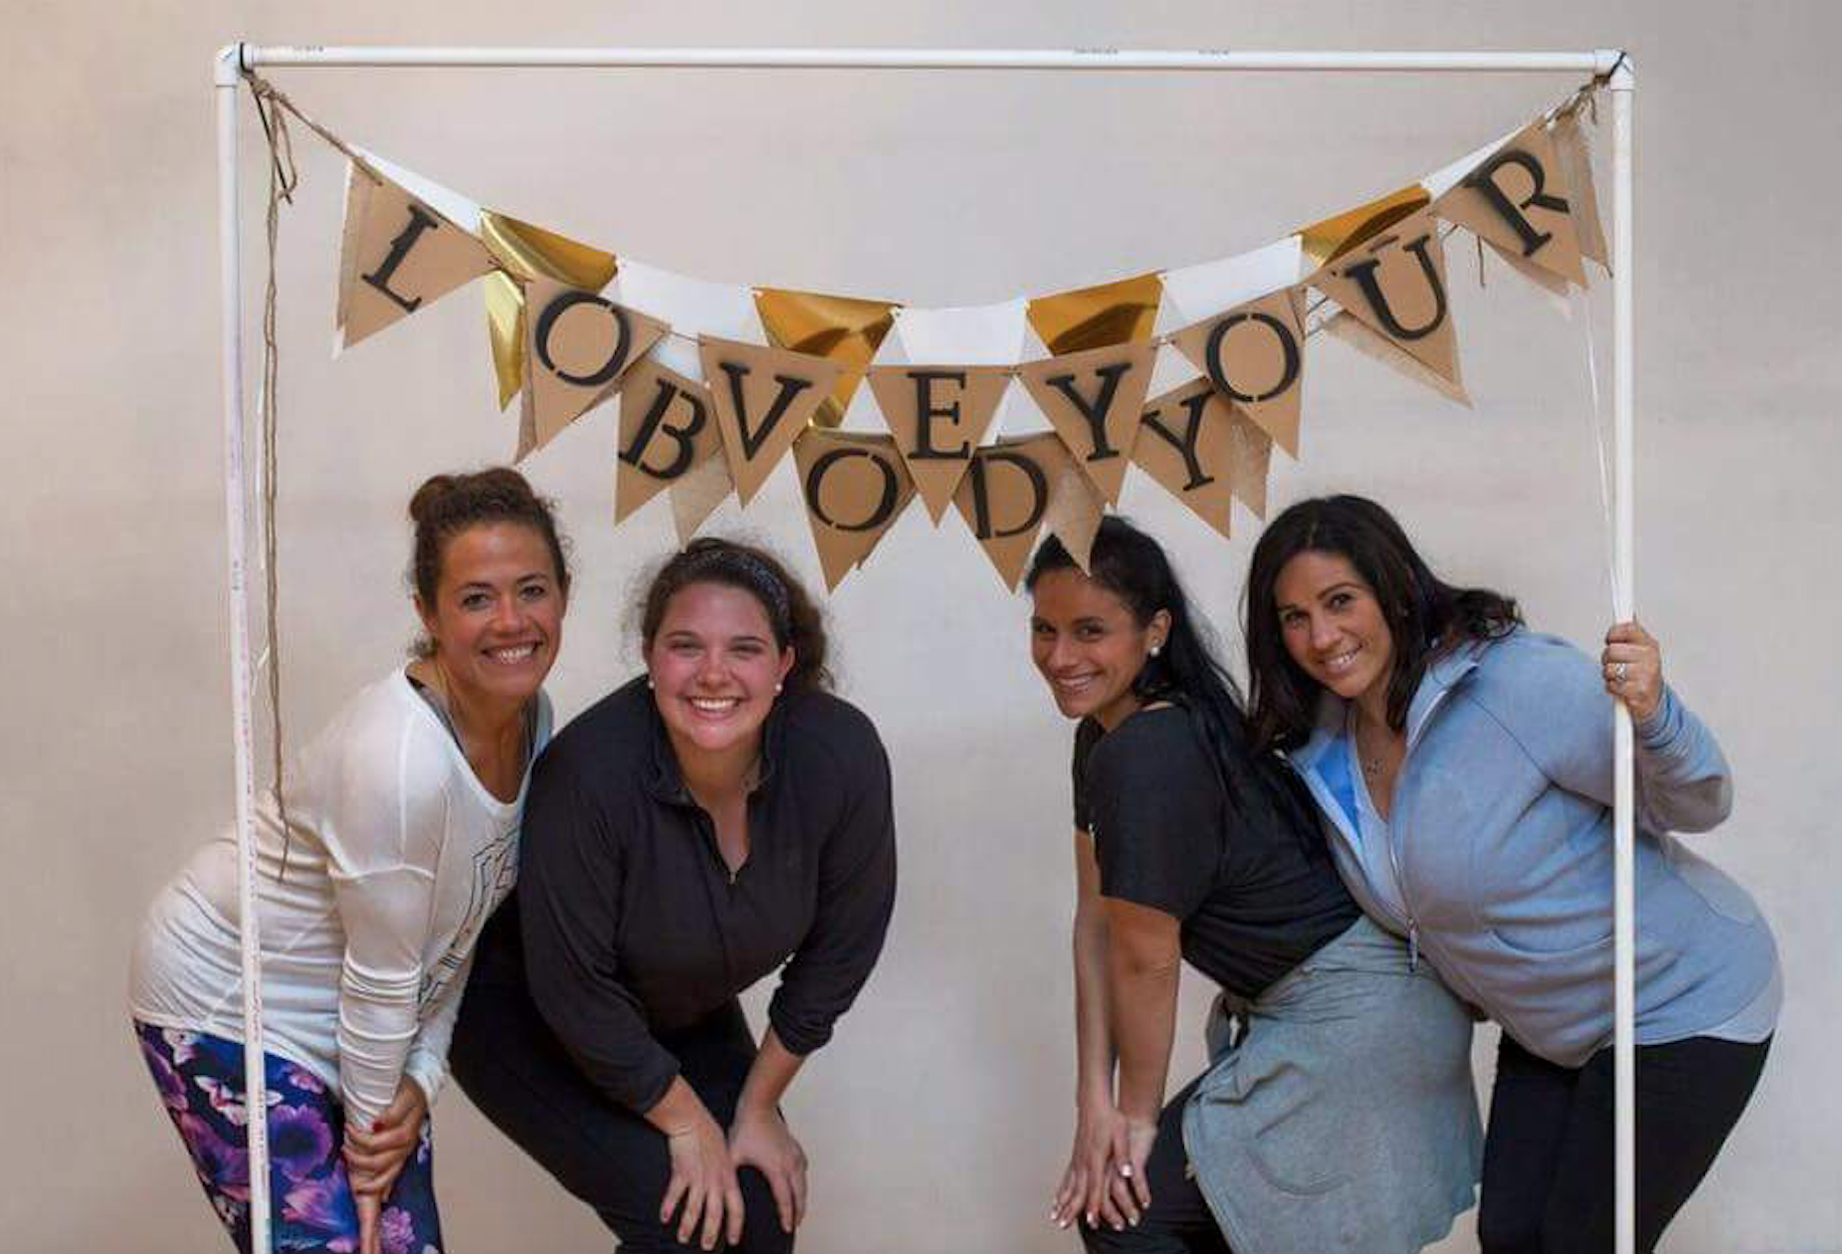 Brittany is featured third from the left. To the right of her is her #1 supporter, her sister Jennifer Venezio, the owner of Body By Design Group Fitness.